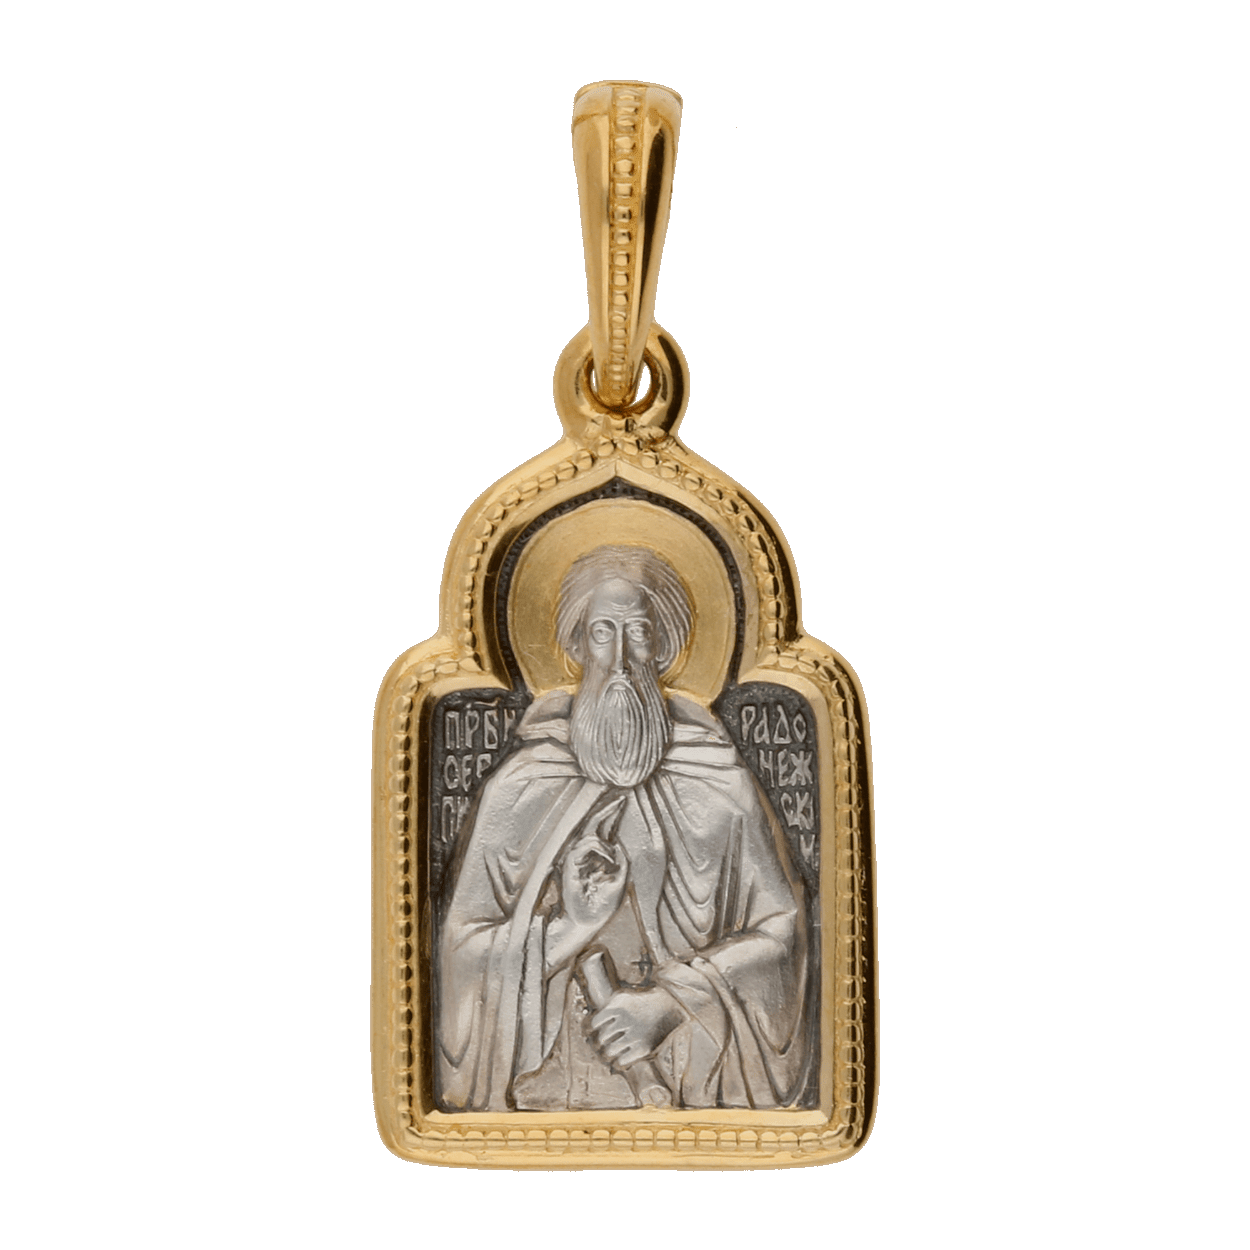 IS061_A-Russian-Orthodox-silver-icon-medal-pendant-SAINT-SERGIUS-OF-RADONEZH-Master-Jeweler-Fedorov (1)-min